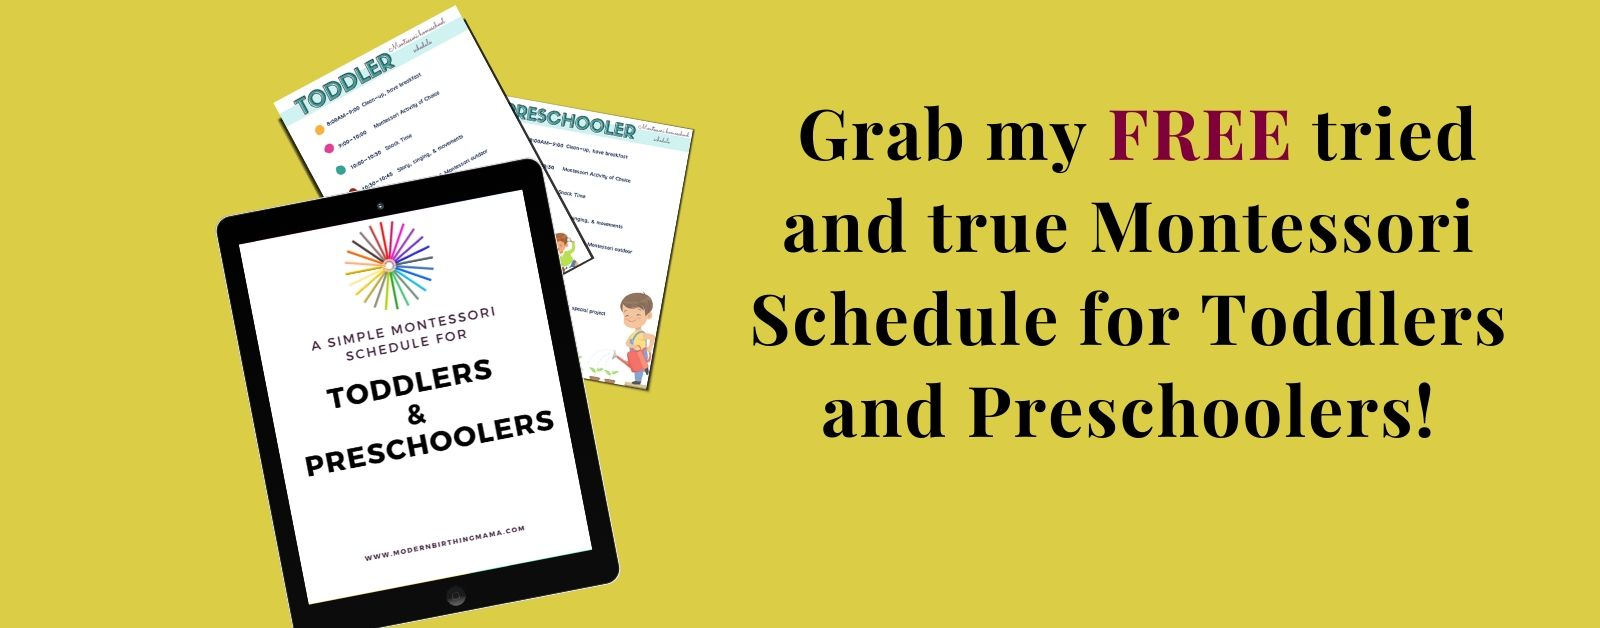 grab free montessori schedule with ipad